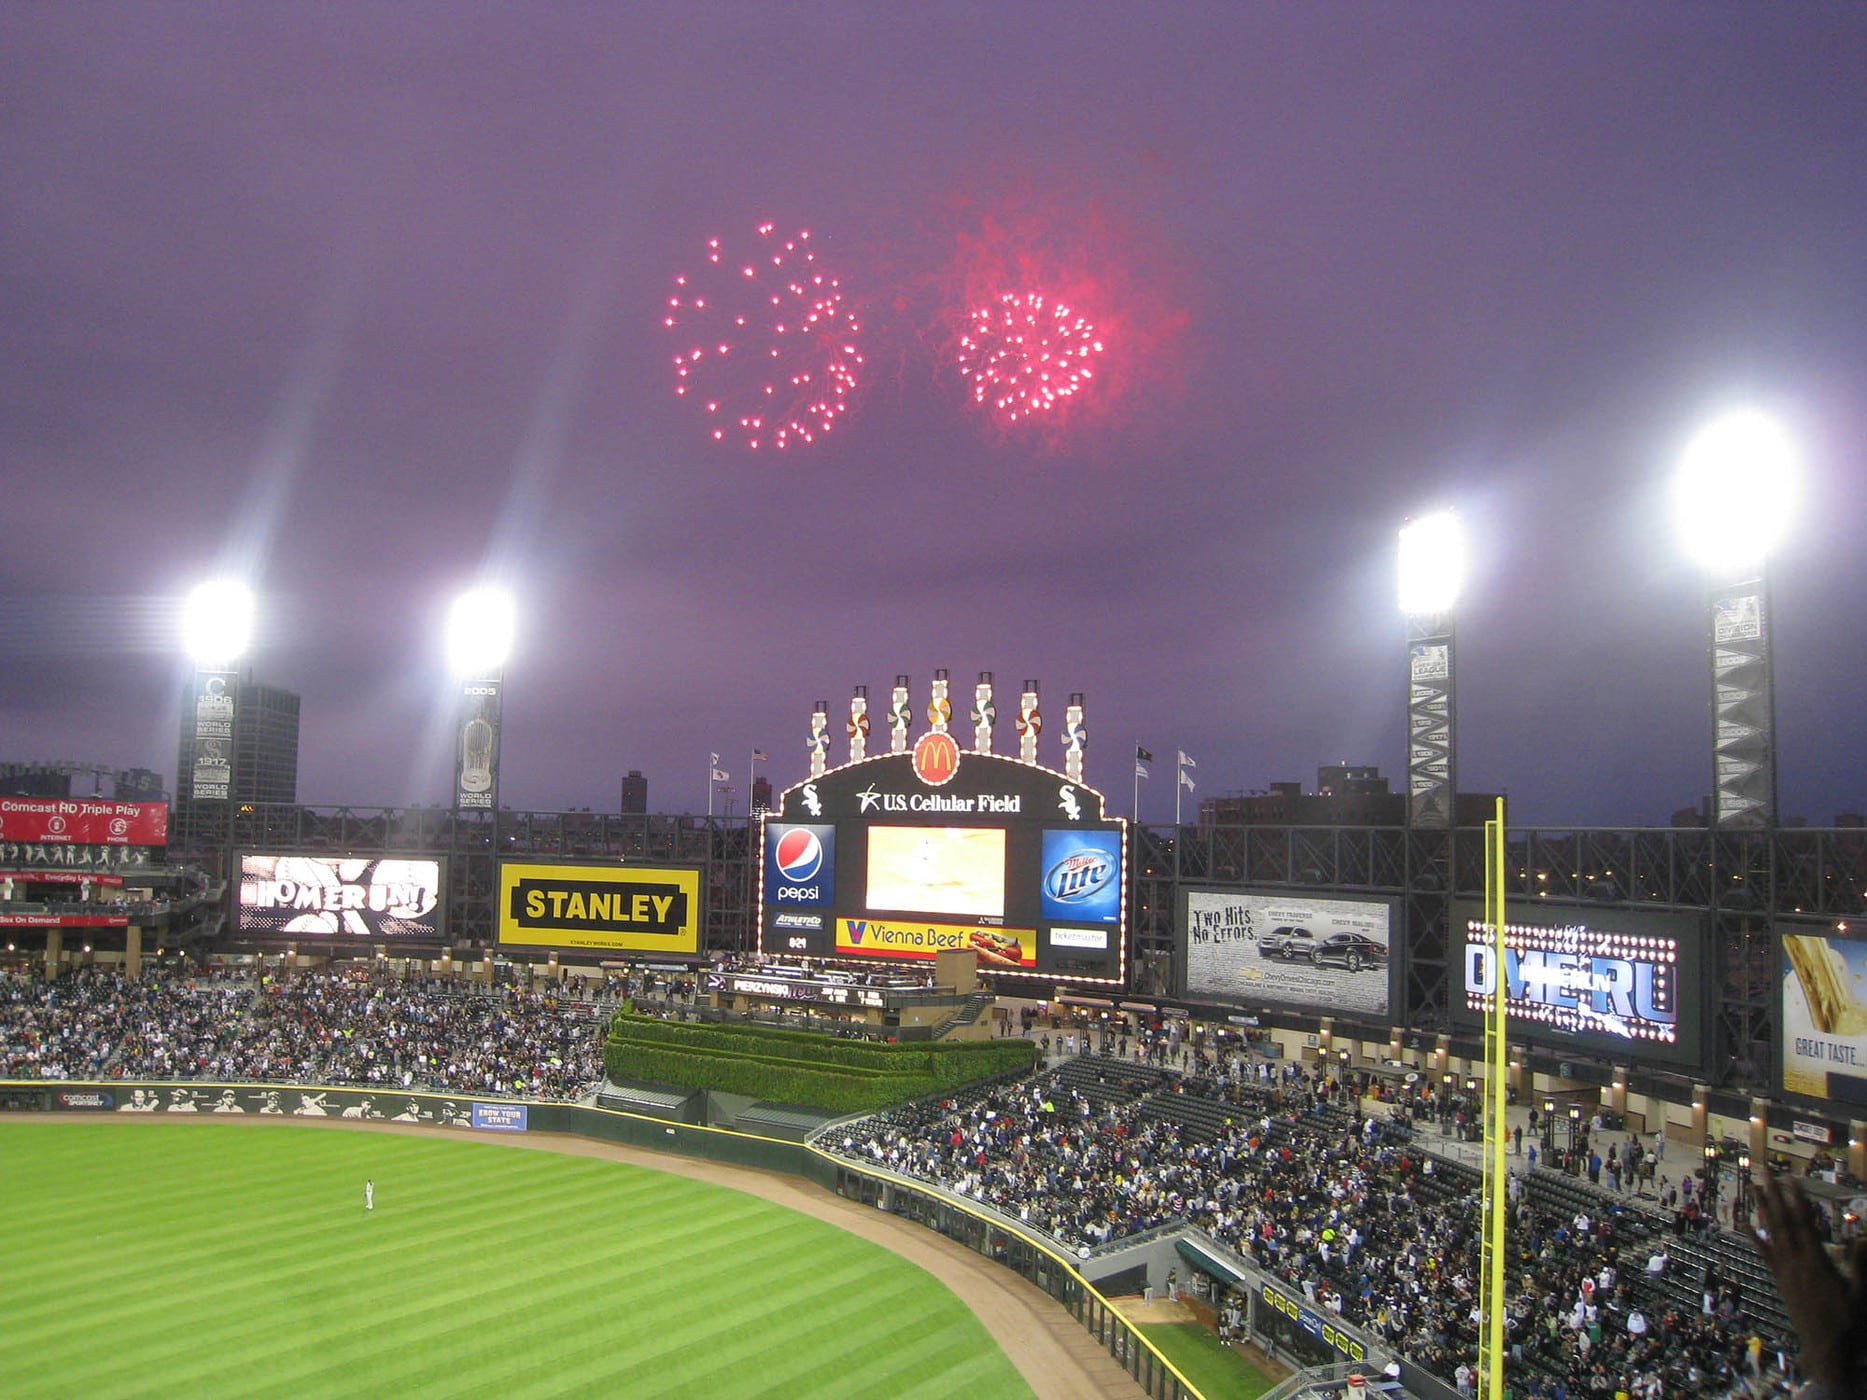 Fireworks at a White Sox Game